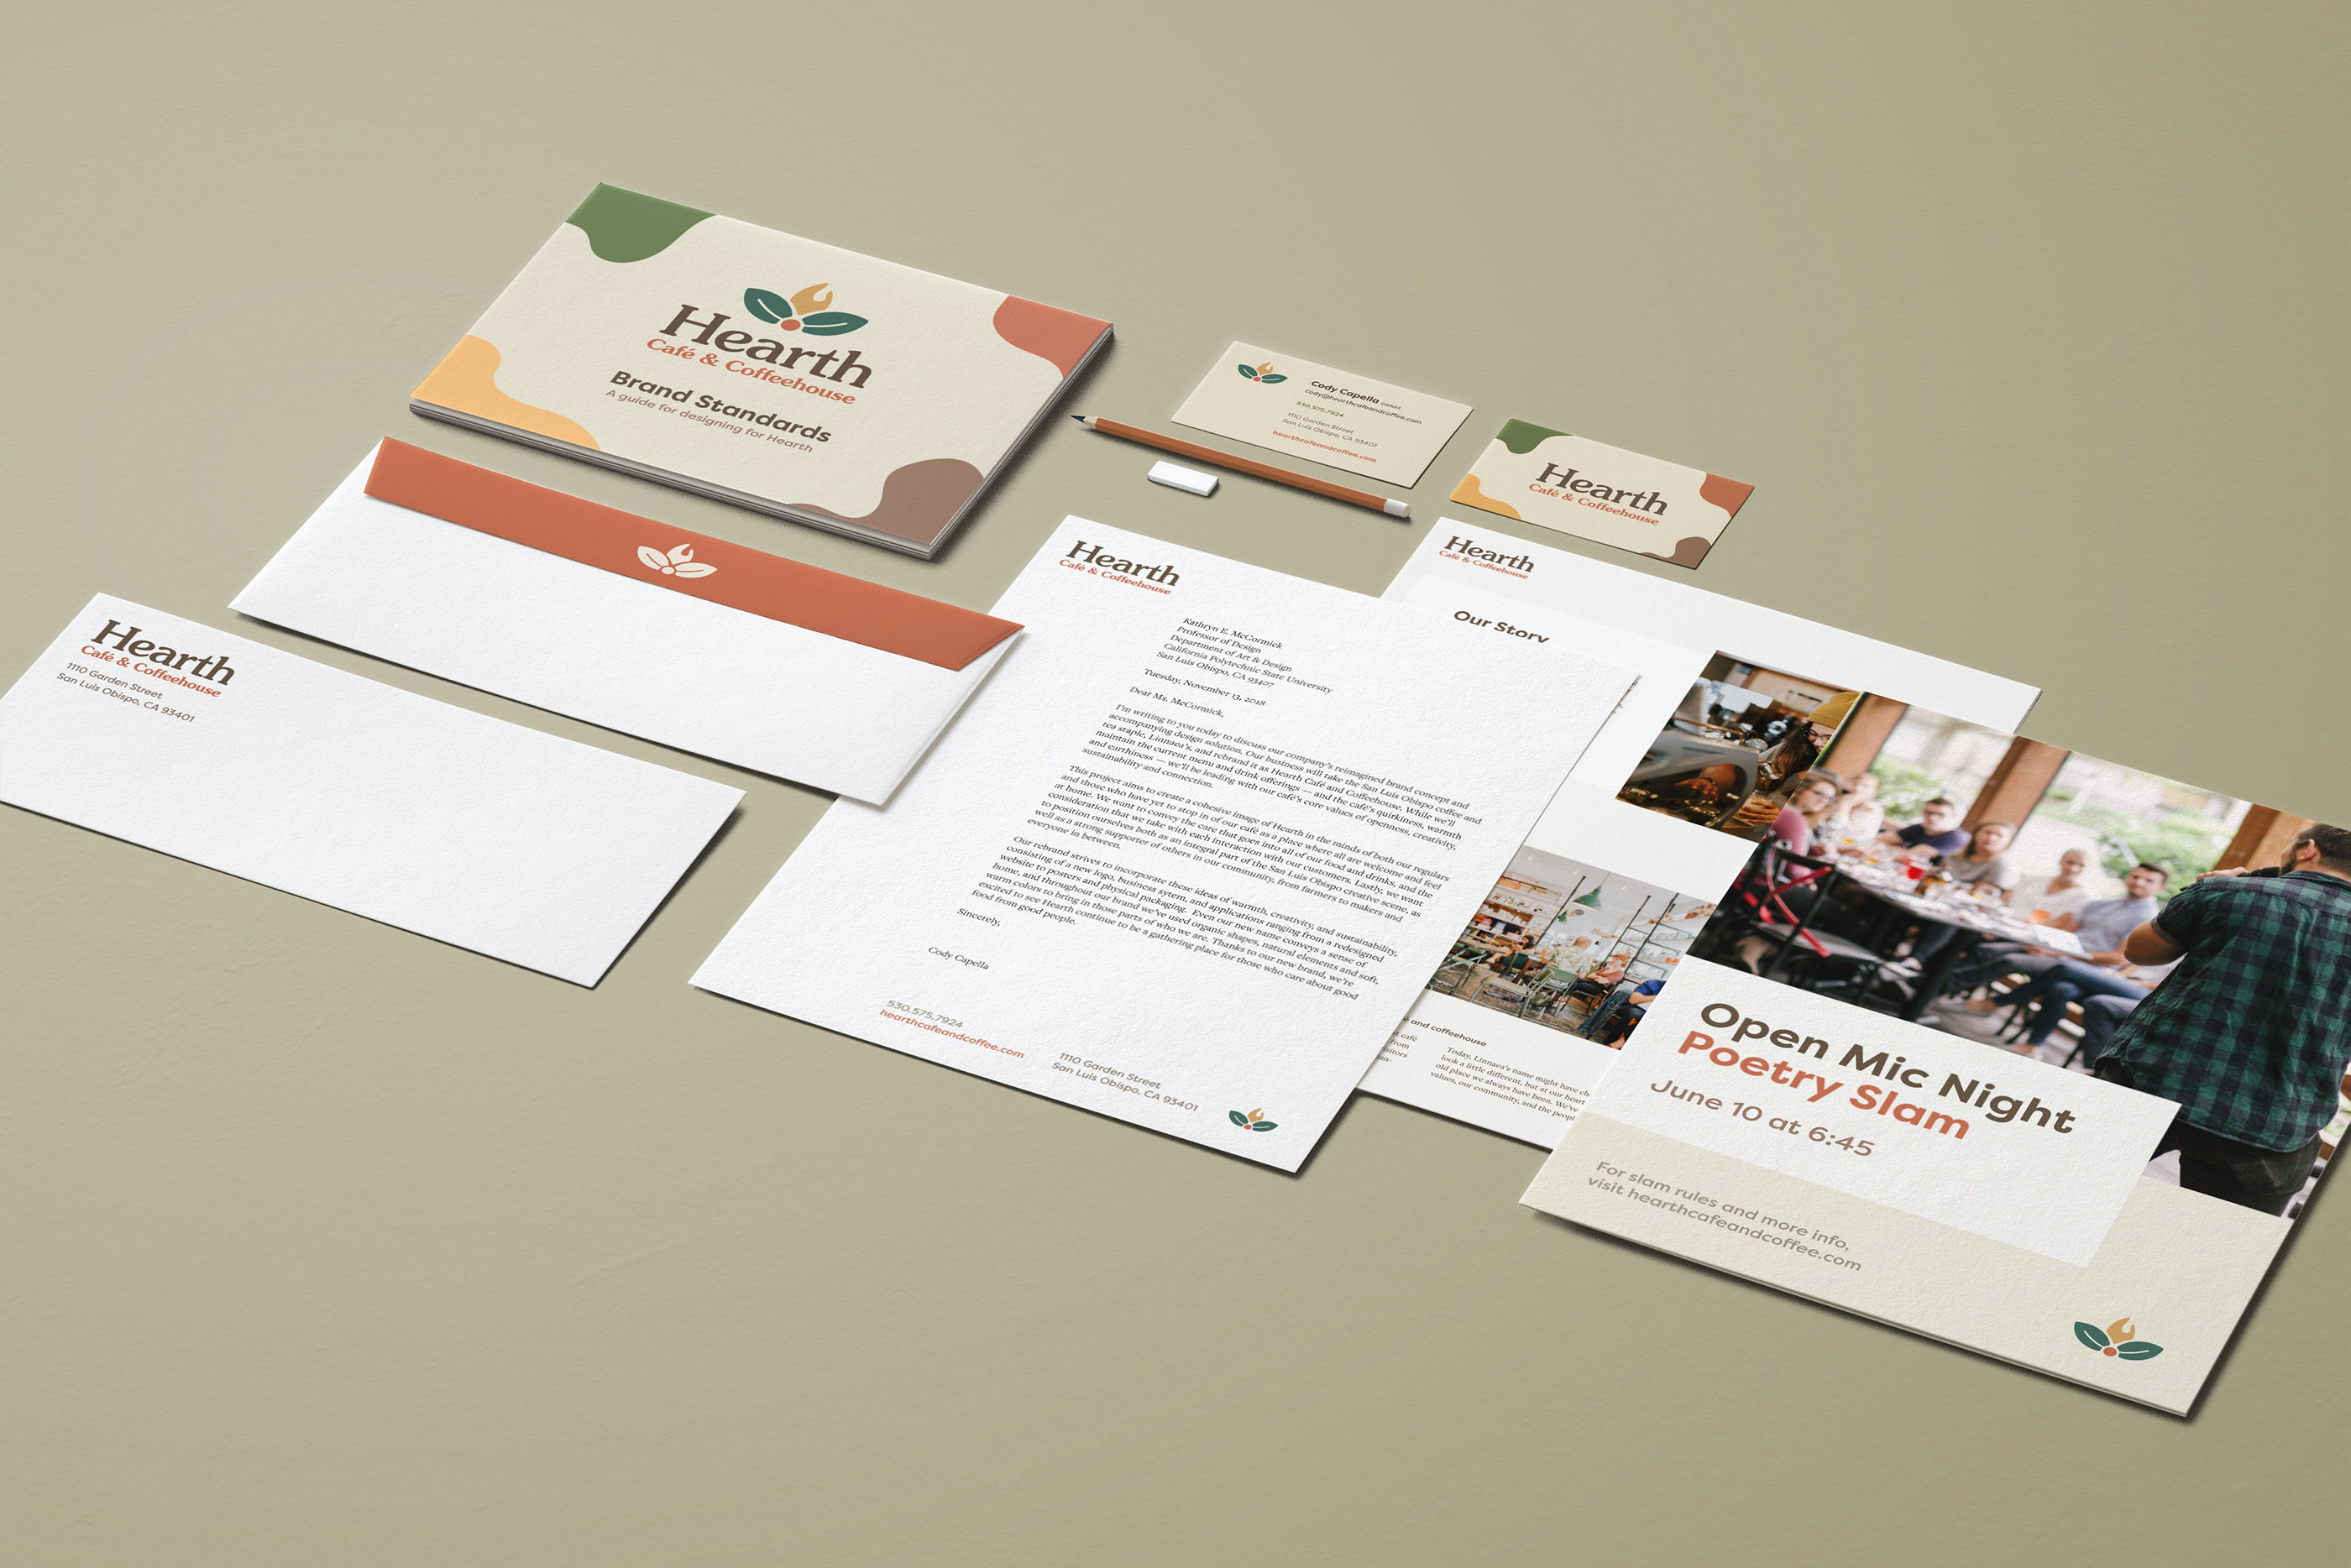 Hearth's identity system, including business cards, envelope, letterhead, and brand standards manual